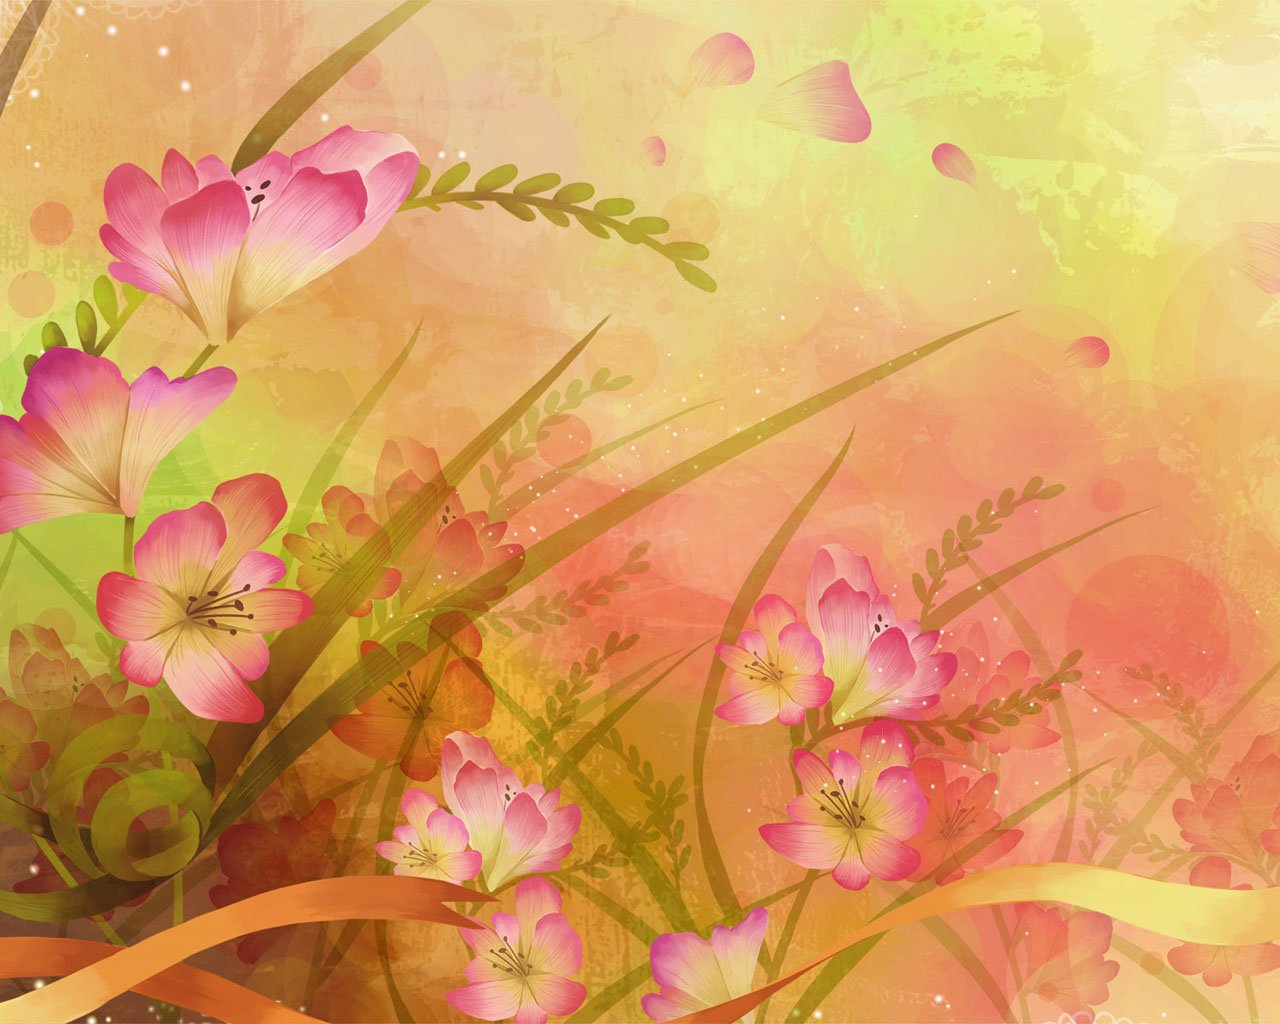 New Floral Wallpapers Feb 9 2011   Screensavers and Backgrounds 1280x1024